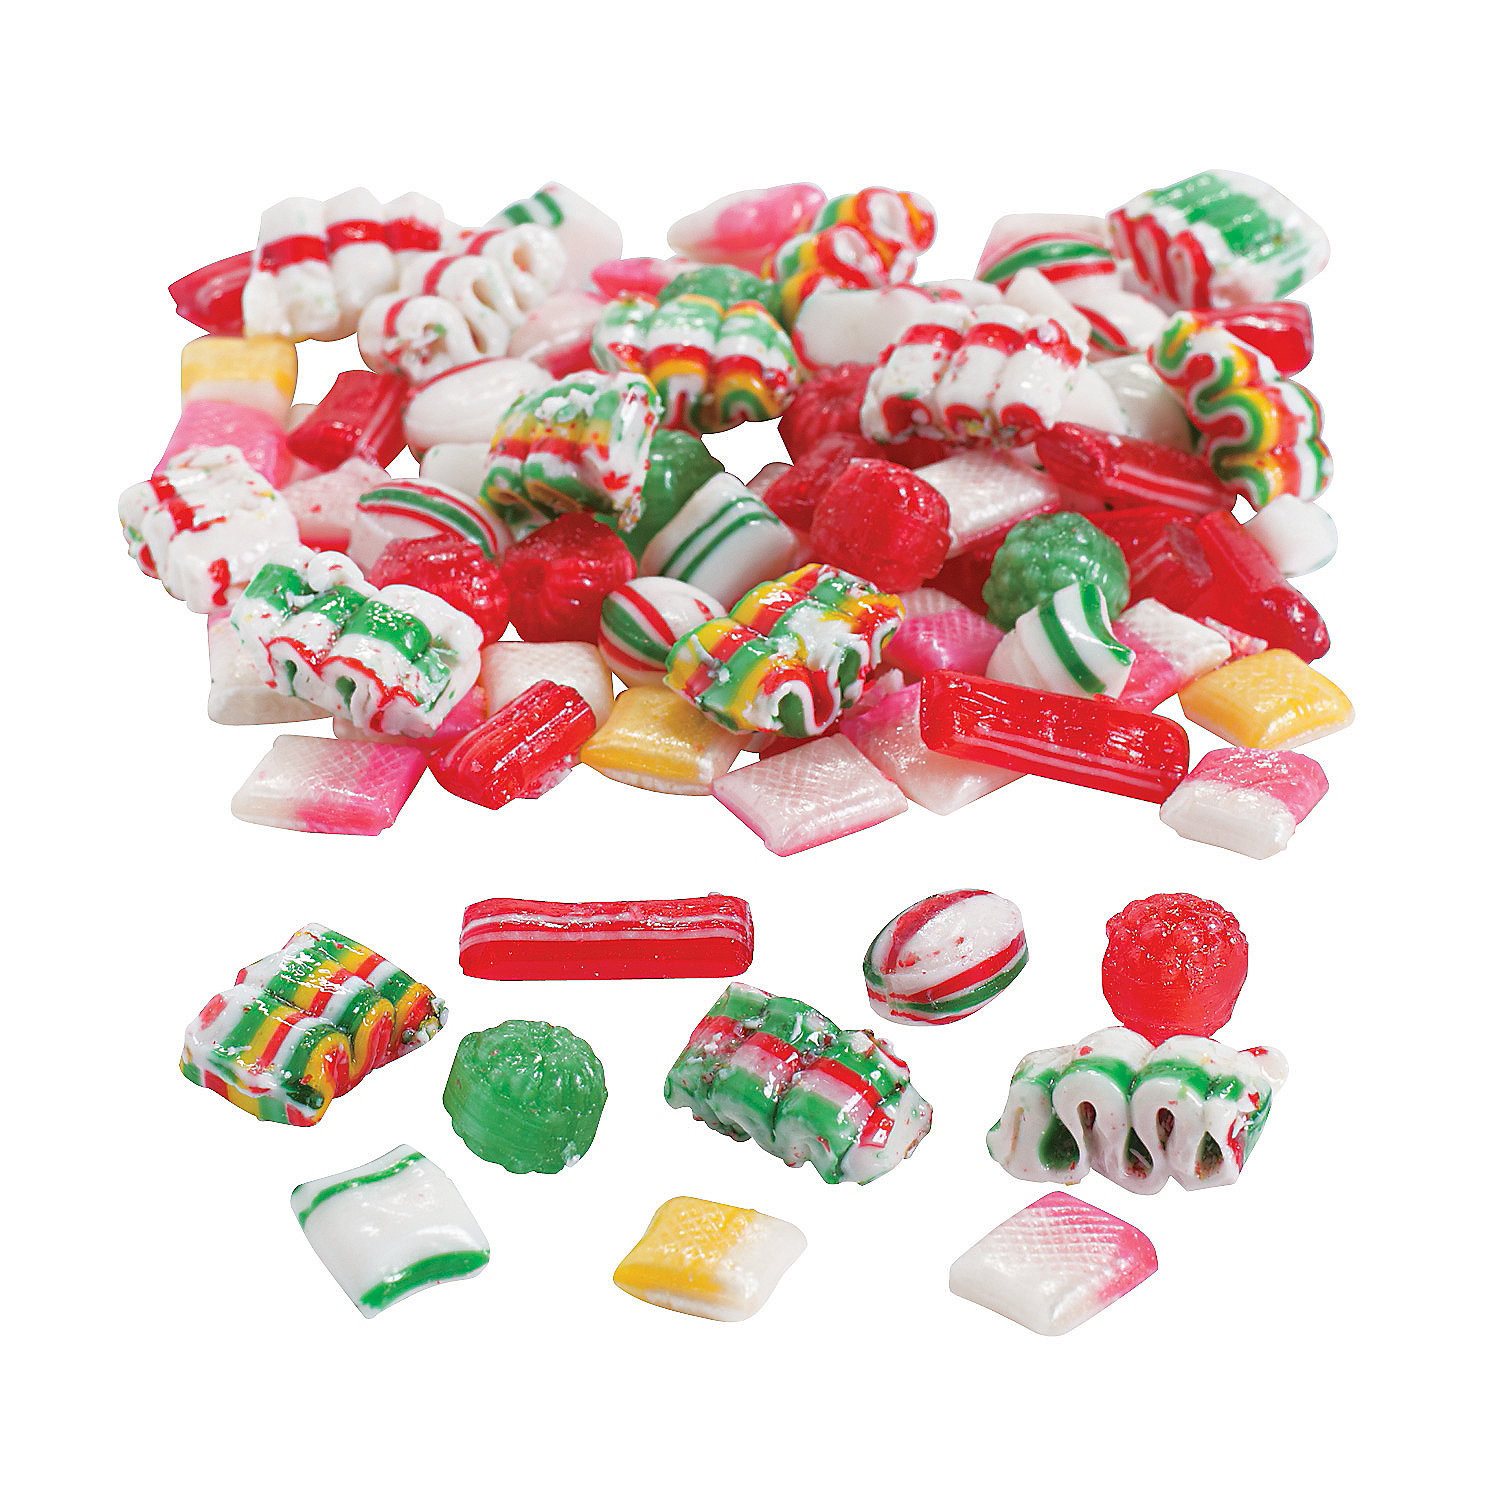 Old Fashioned Christmas Candy Mix  Brach's Holiday Old Fashioned Candy Mix Oriental